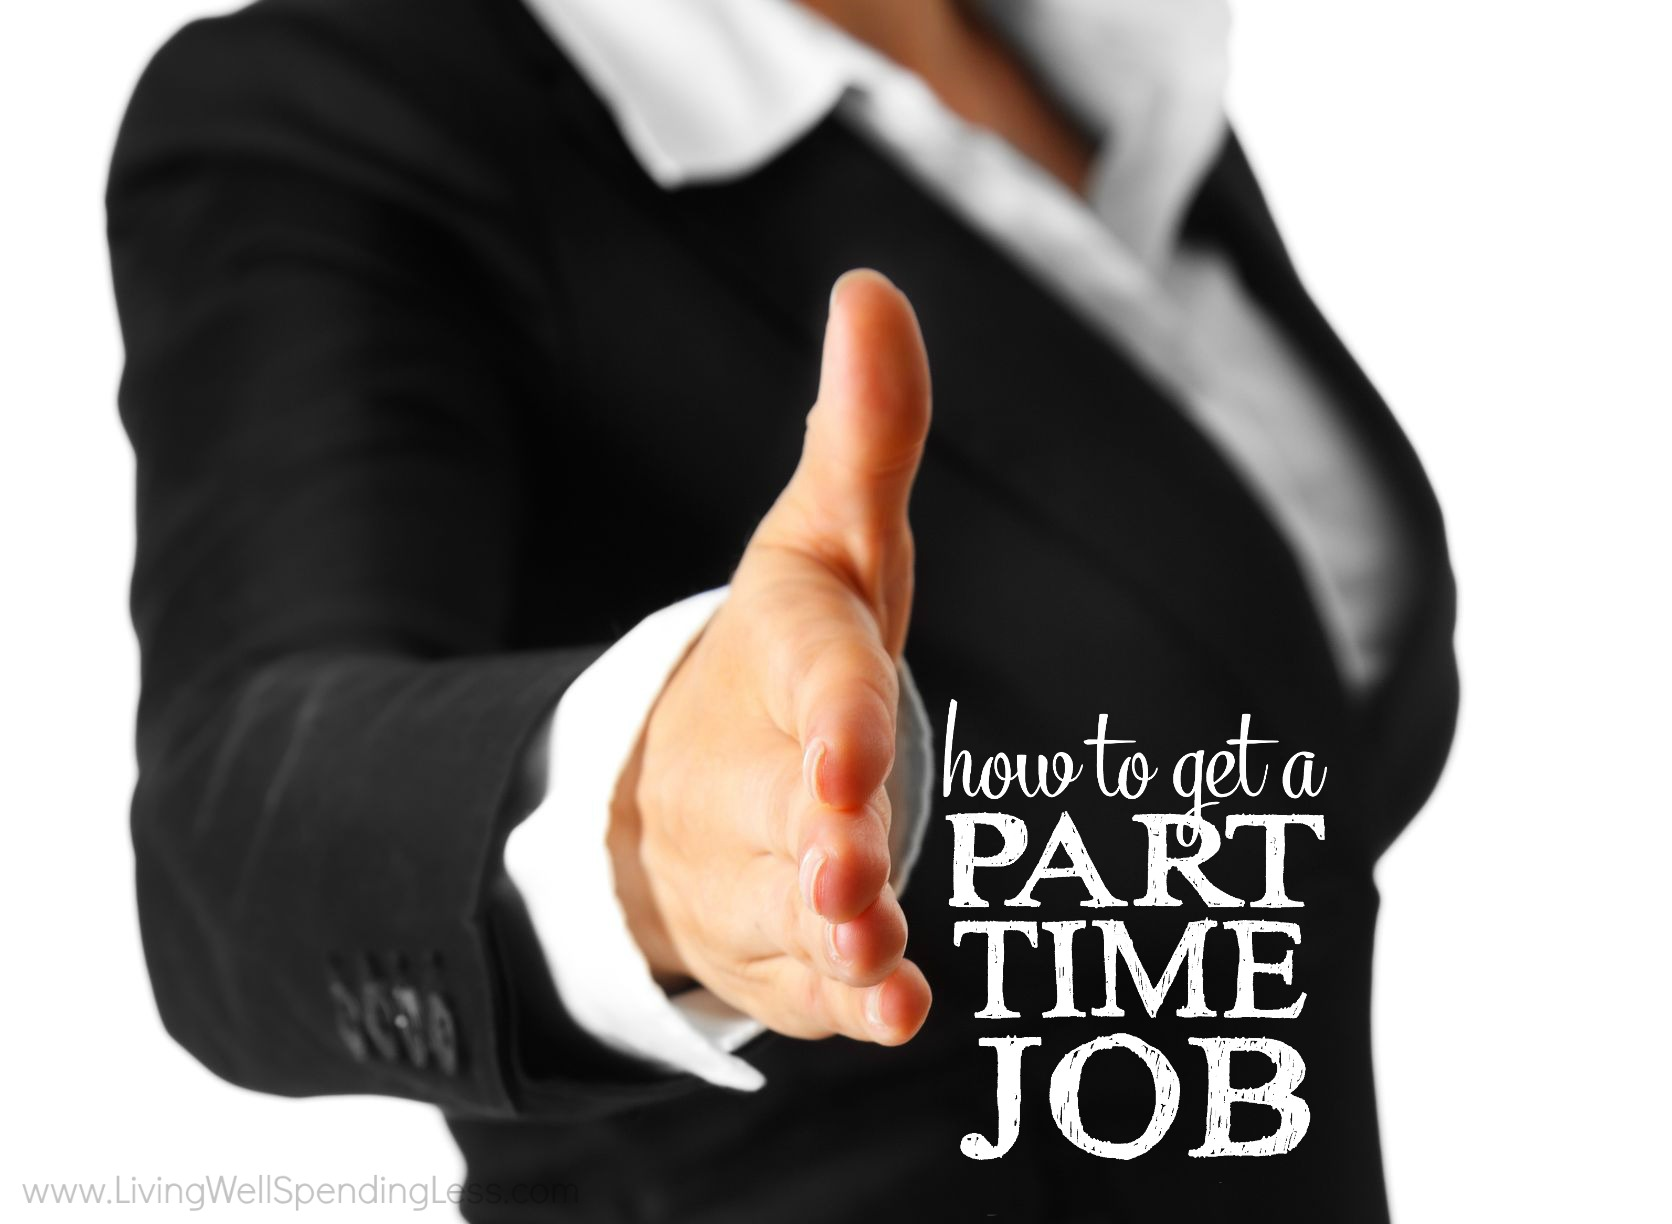 how to get a part time job